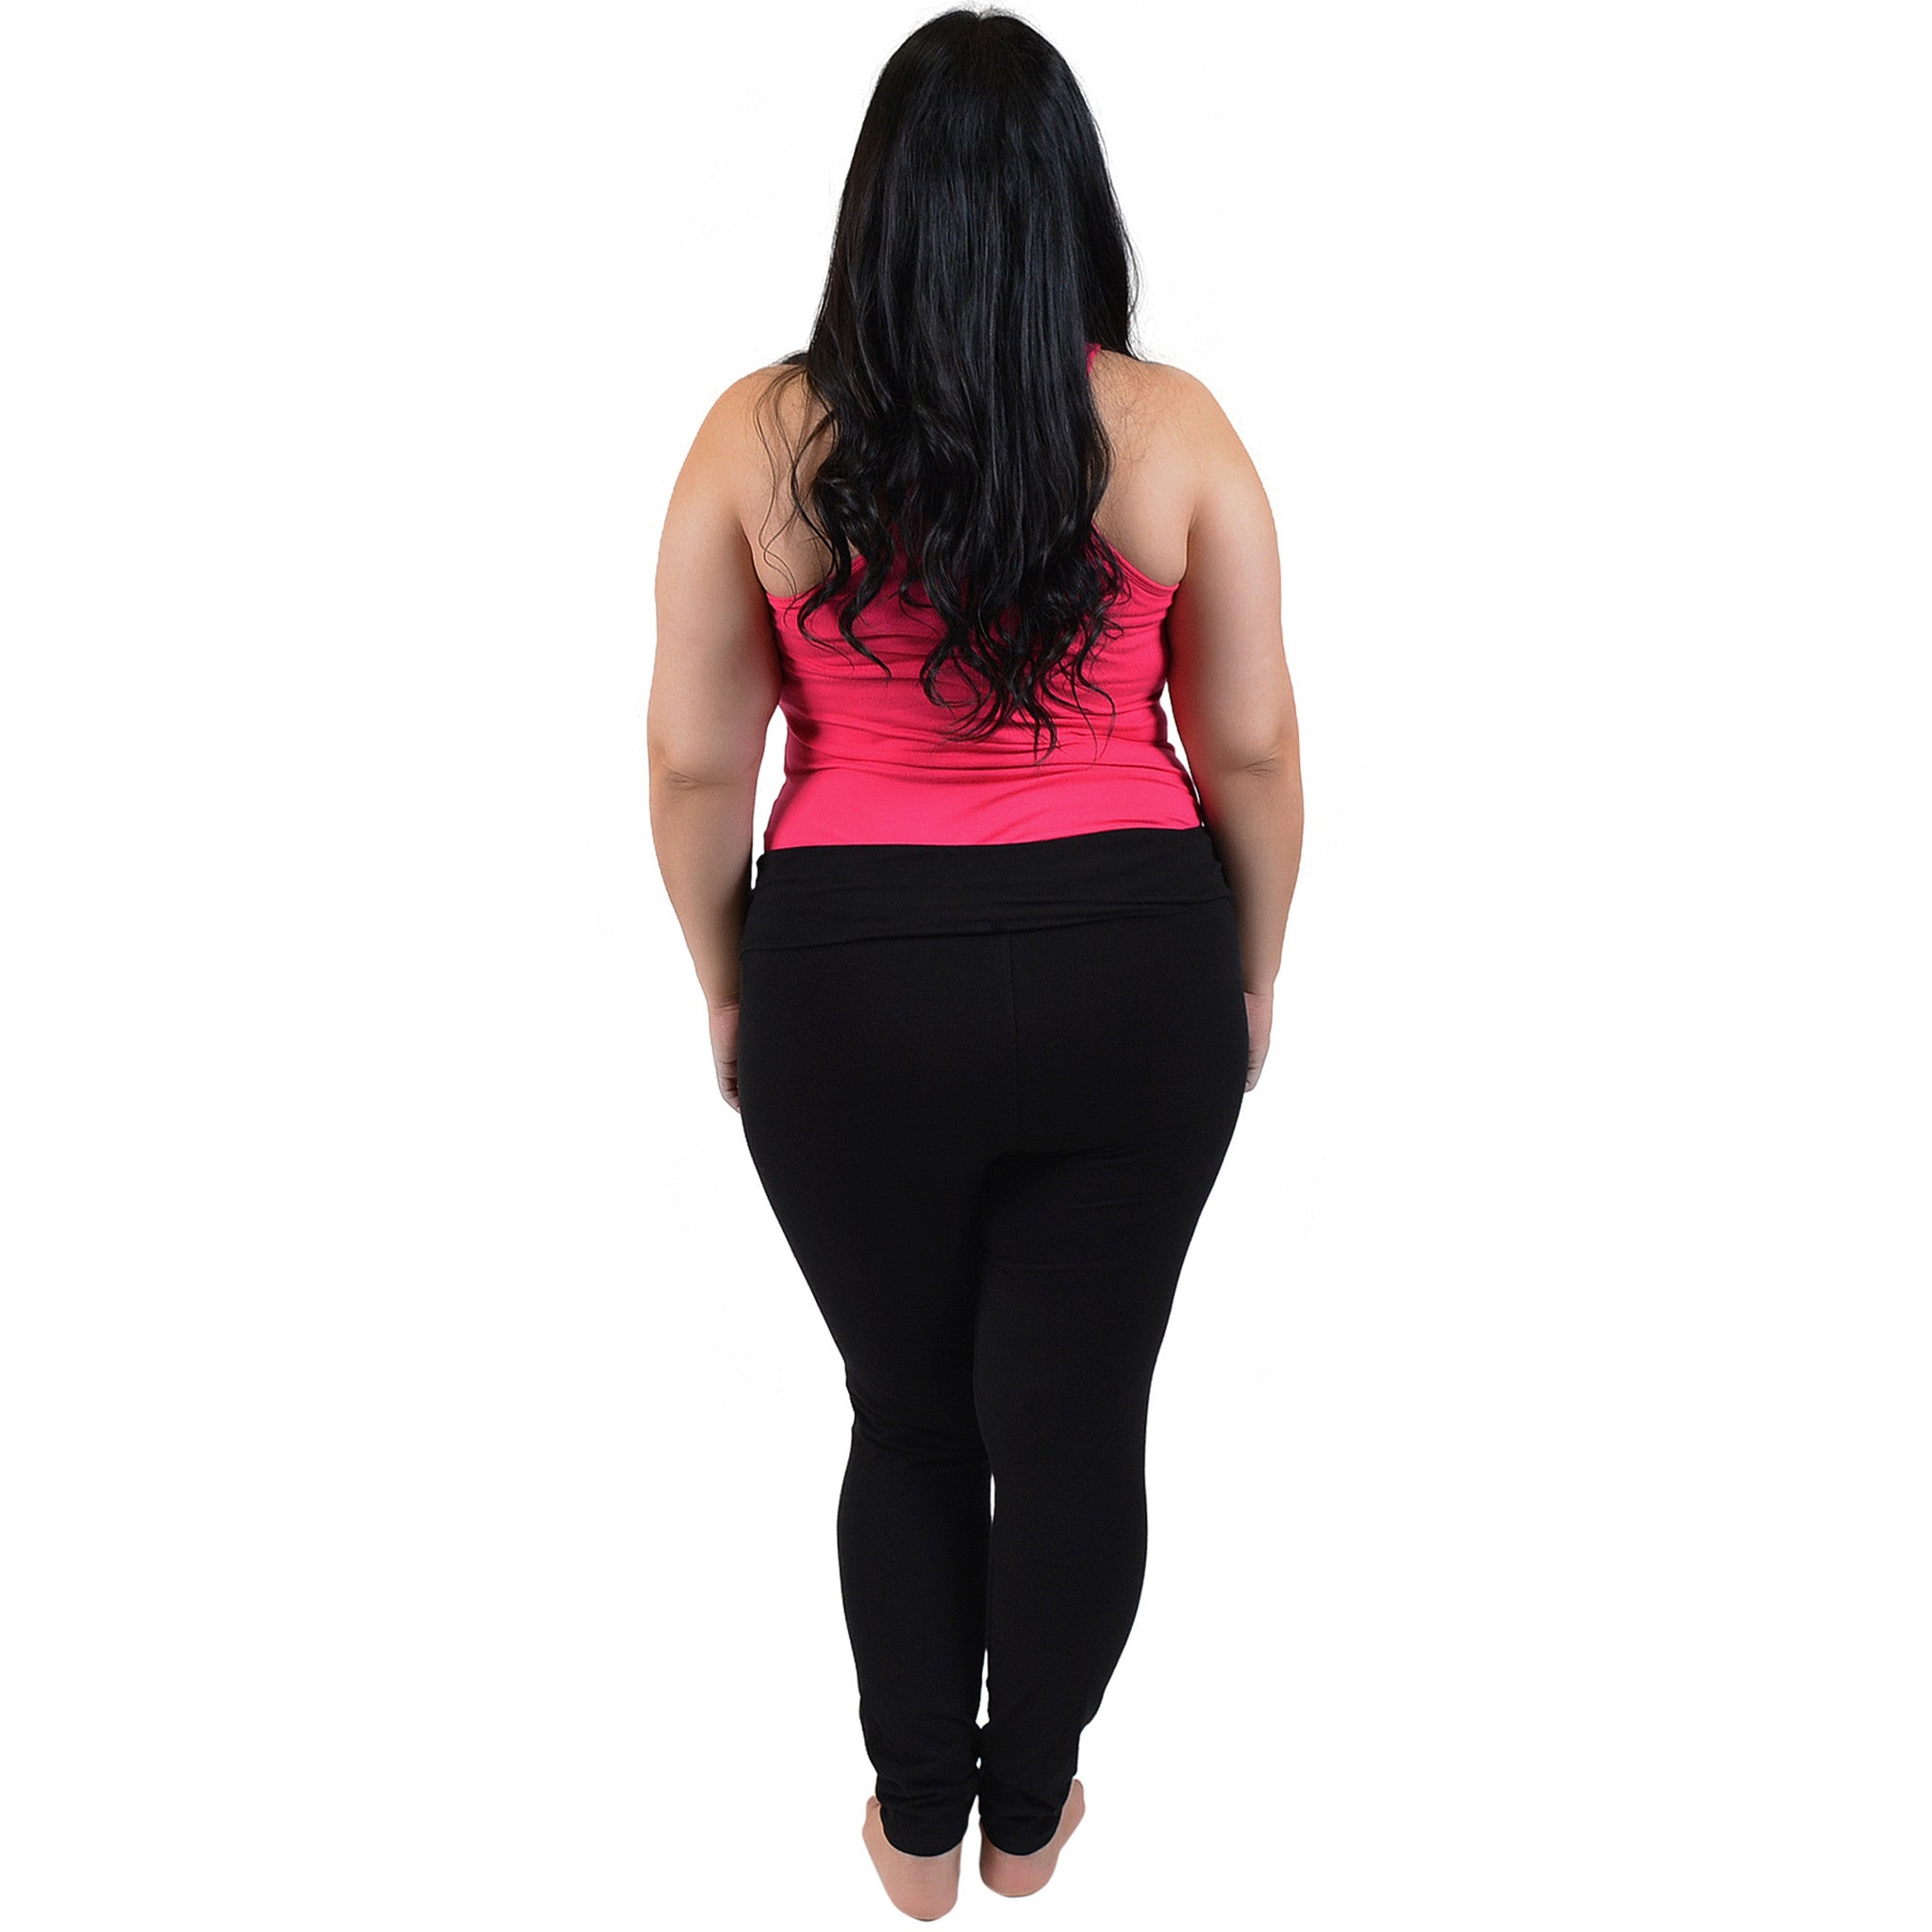 Plus Size Cheer Rhinestone Foldover Cotton Leggings